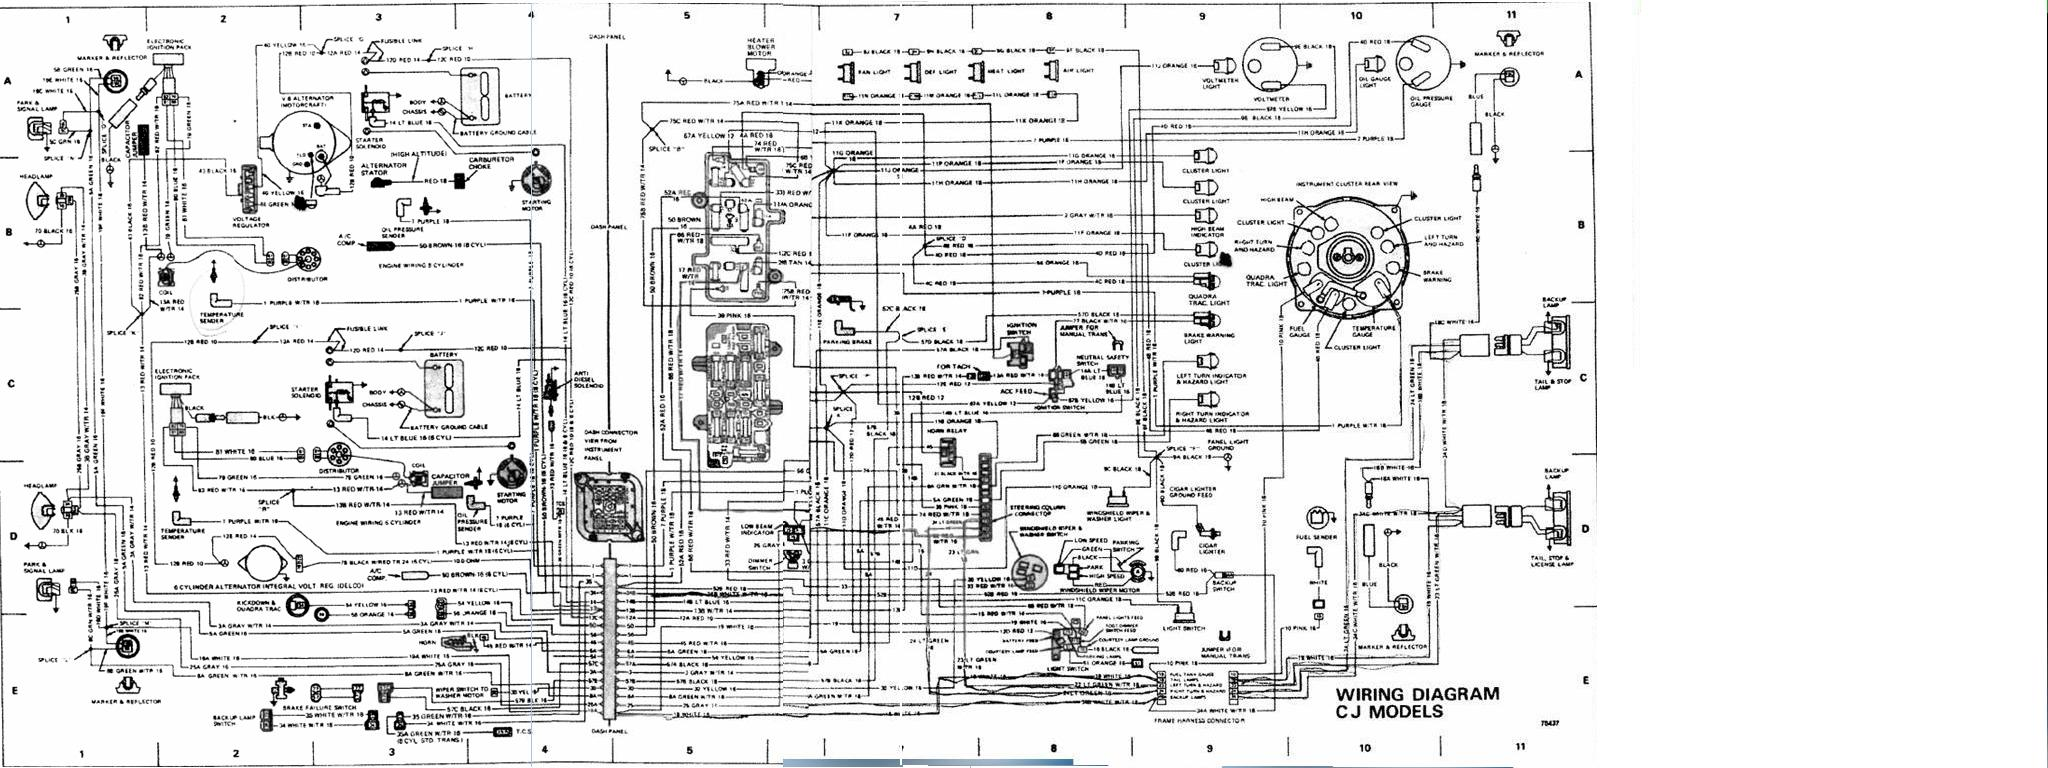 1968 Cj5 Wiring Harness - Wiring Diagram Today Escalade Starter Wiring Diagram on grand am wiring diagram, wrangler wiring diagram, rav4 wiring diagram, pt cruiser wiring diagram, ssr wiring diagram, firebird wiring diagram, 2007 yukon wiring diagram, lumina wiring diagram, 1937 cadillac wiring diagram, cutlass wiring diagram, xterra wiring diagram, 4runner wiring diagram, h3 wiring diagram, allante wiring diagram, hhr wiring diagram, es 350 wiring diagram, impreza wiring diagram, civic wiring diagram, defender 90 wiring diagram, land cruiser wiring diagram,